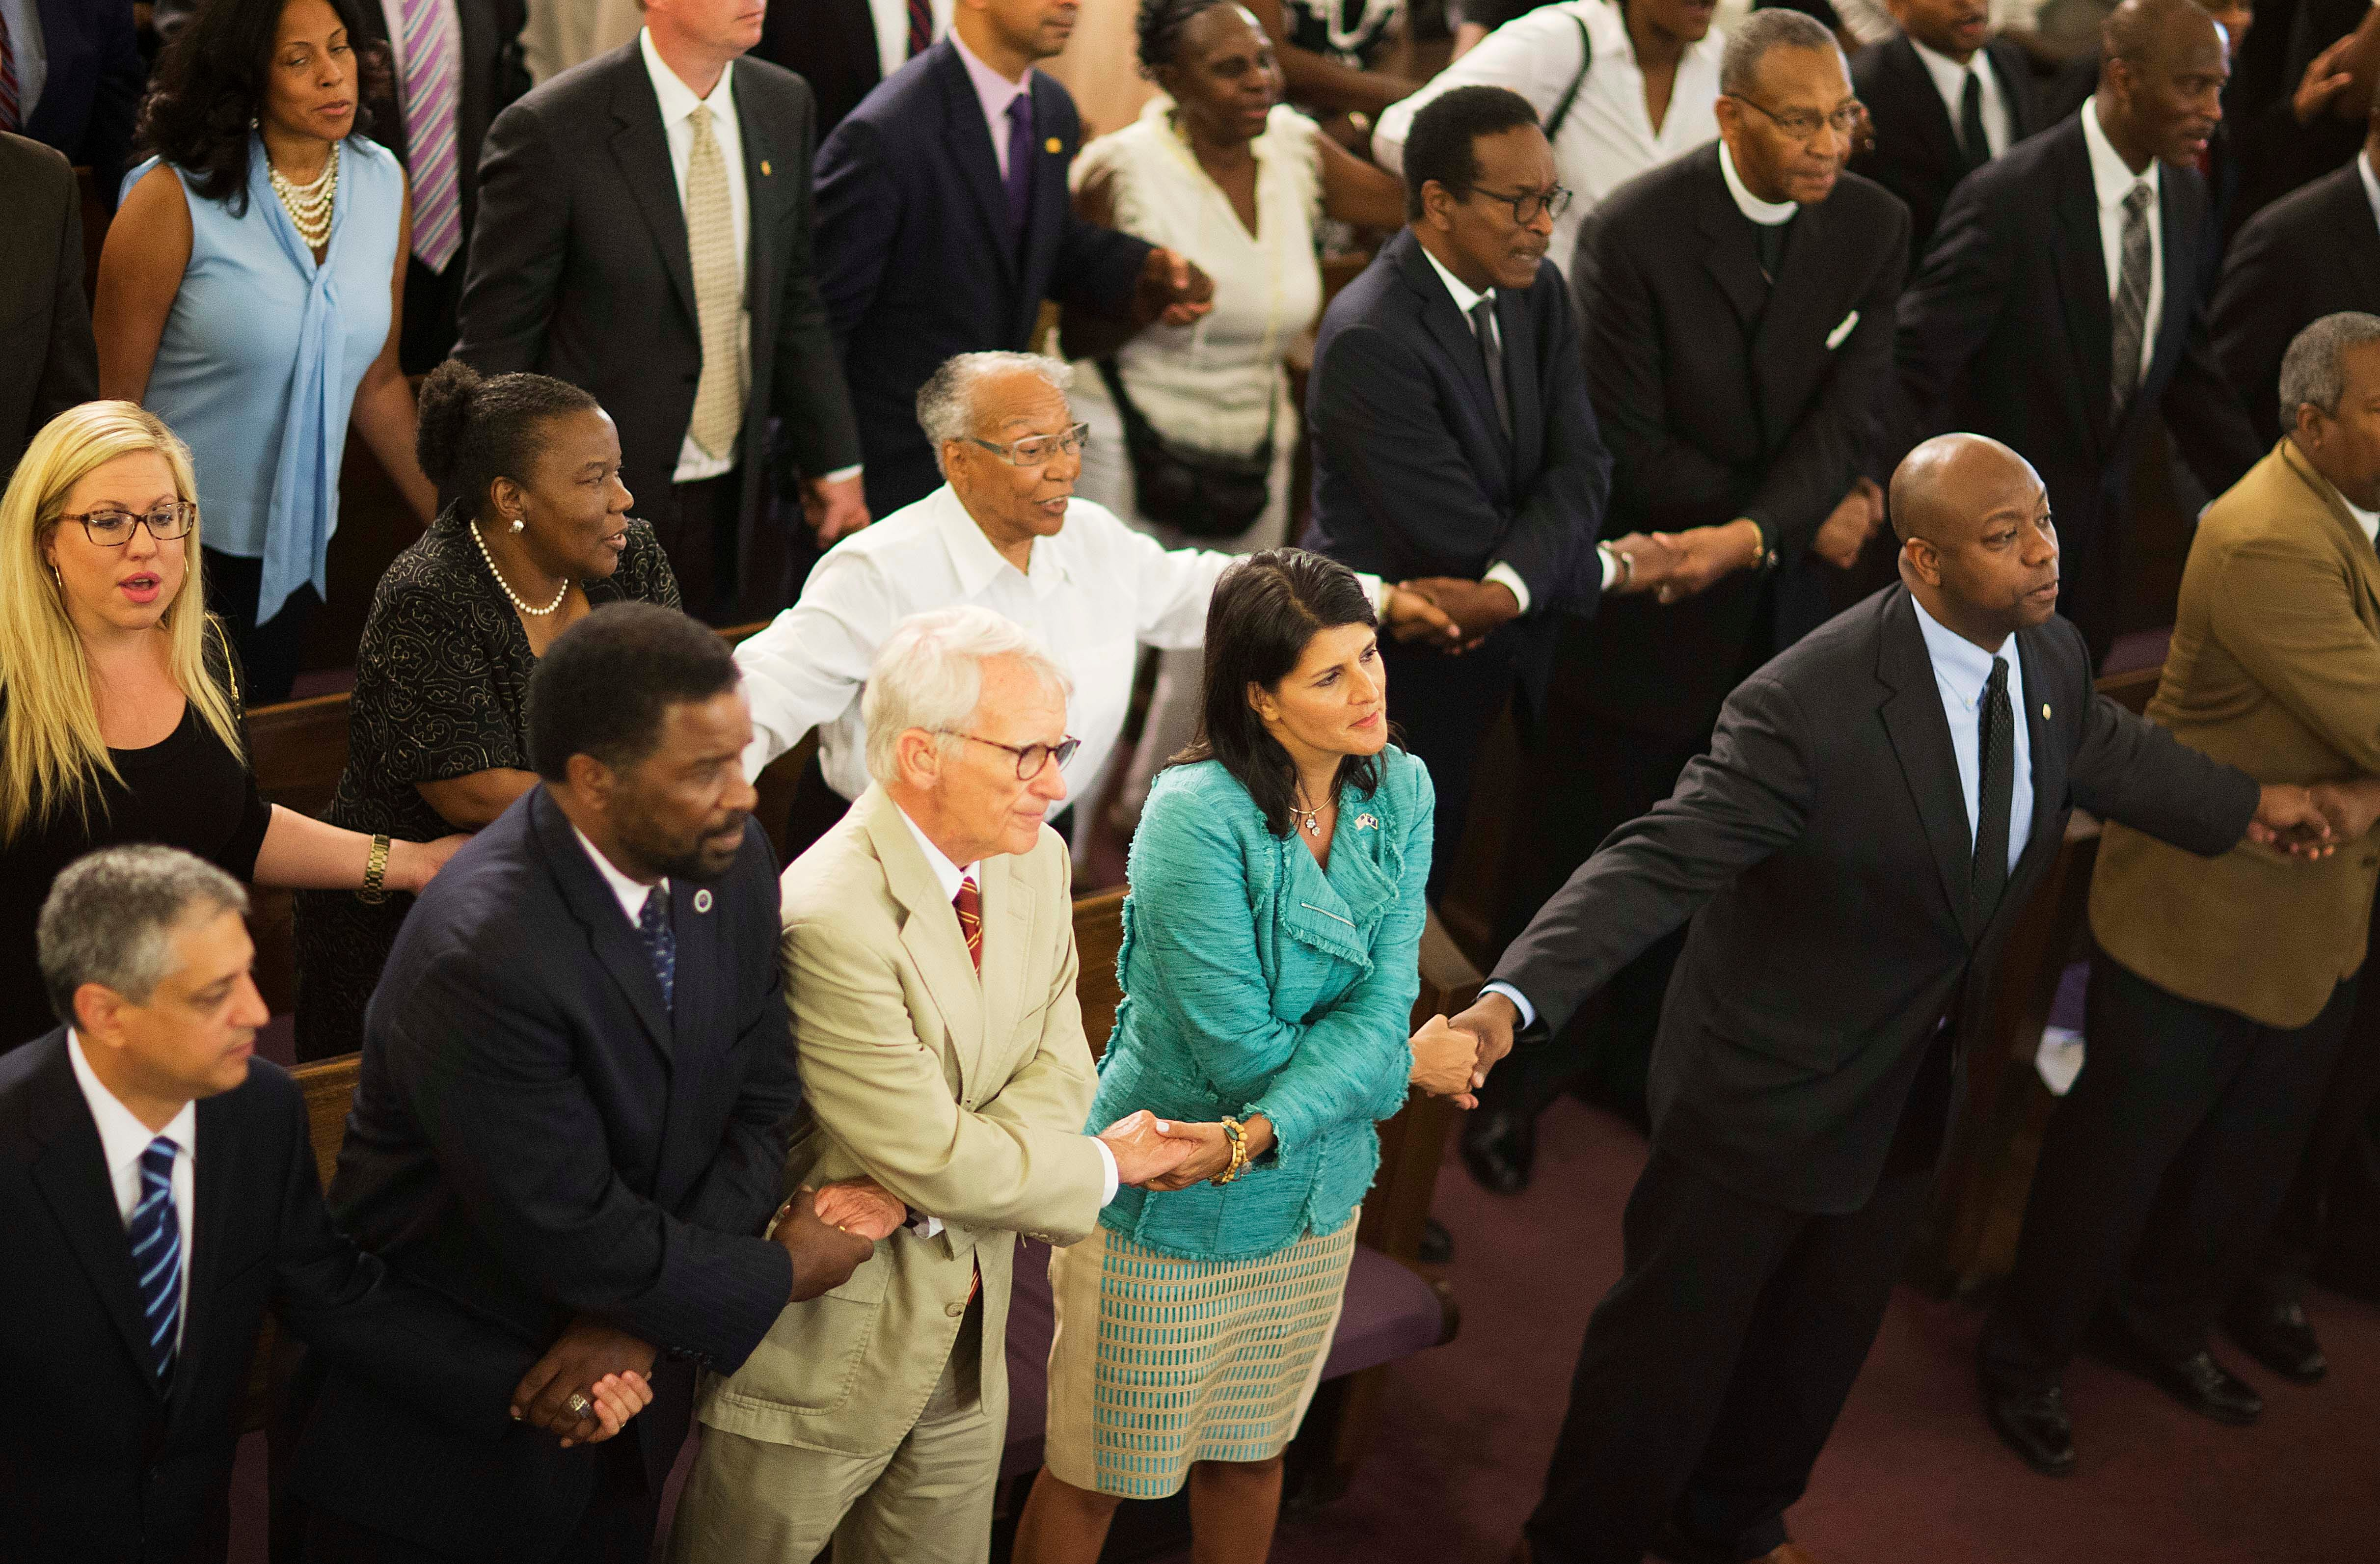 South Carolina Gov. Nikki Haley joins hands with Charleston Mayor Joseph Riley and Sen. Tim Scott, R-S.C., at a memorial service at Morris Brown AME Church for the people killed during a prayer meeting inside the historic black church in Charleston, S.C.